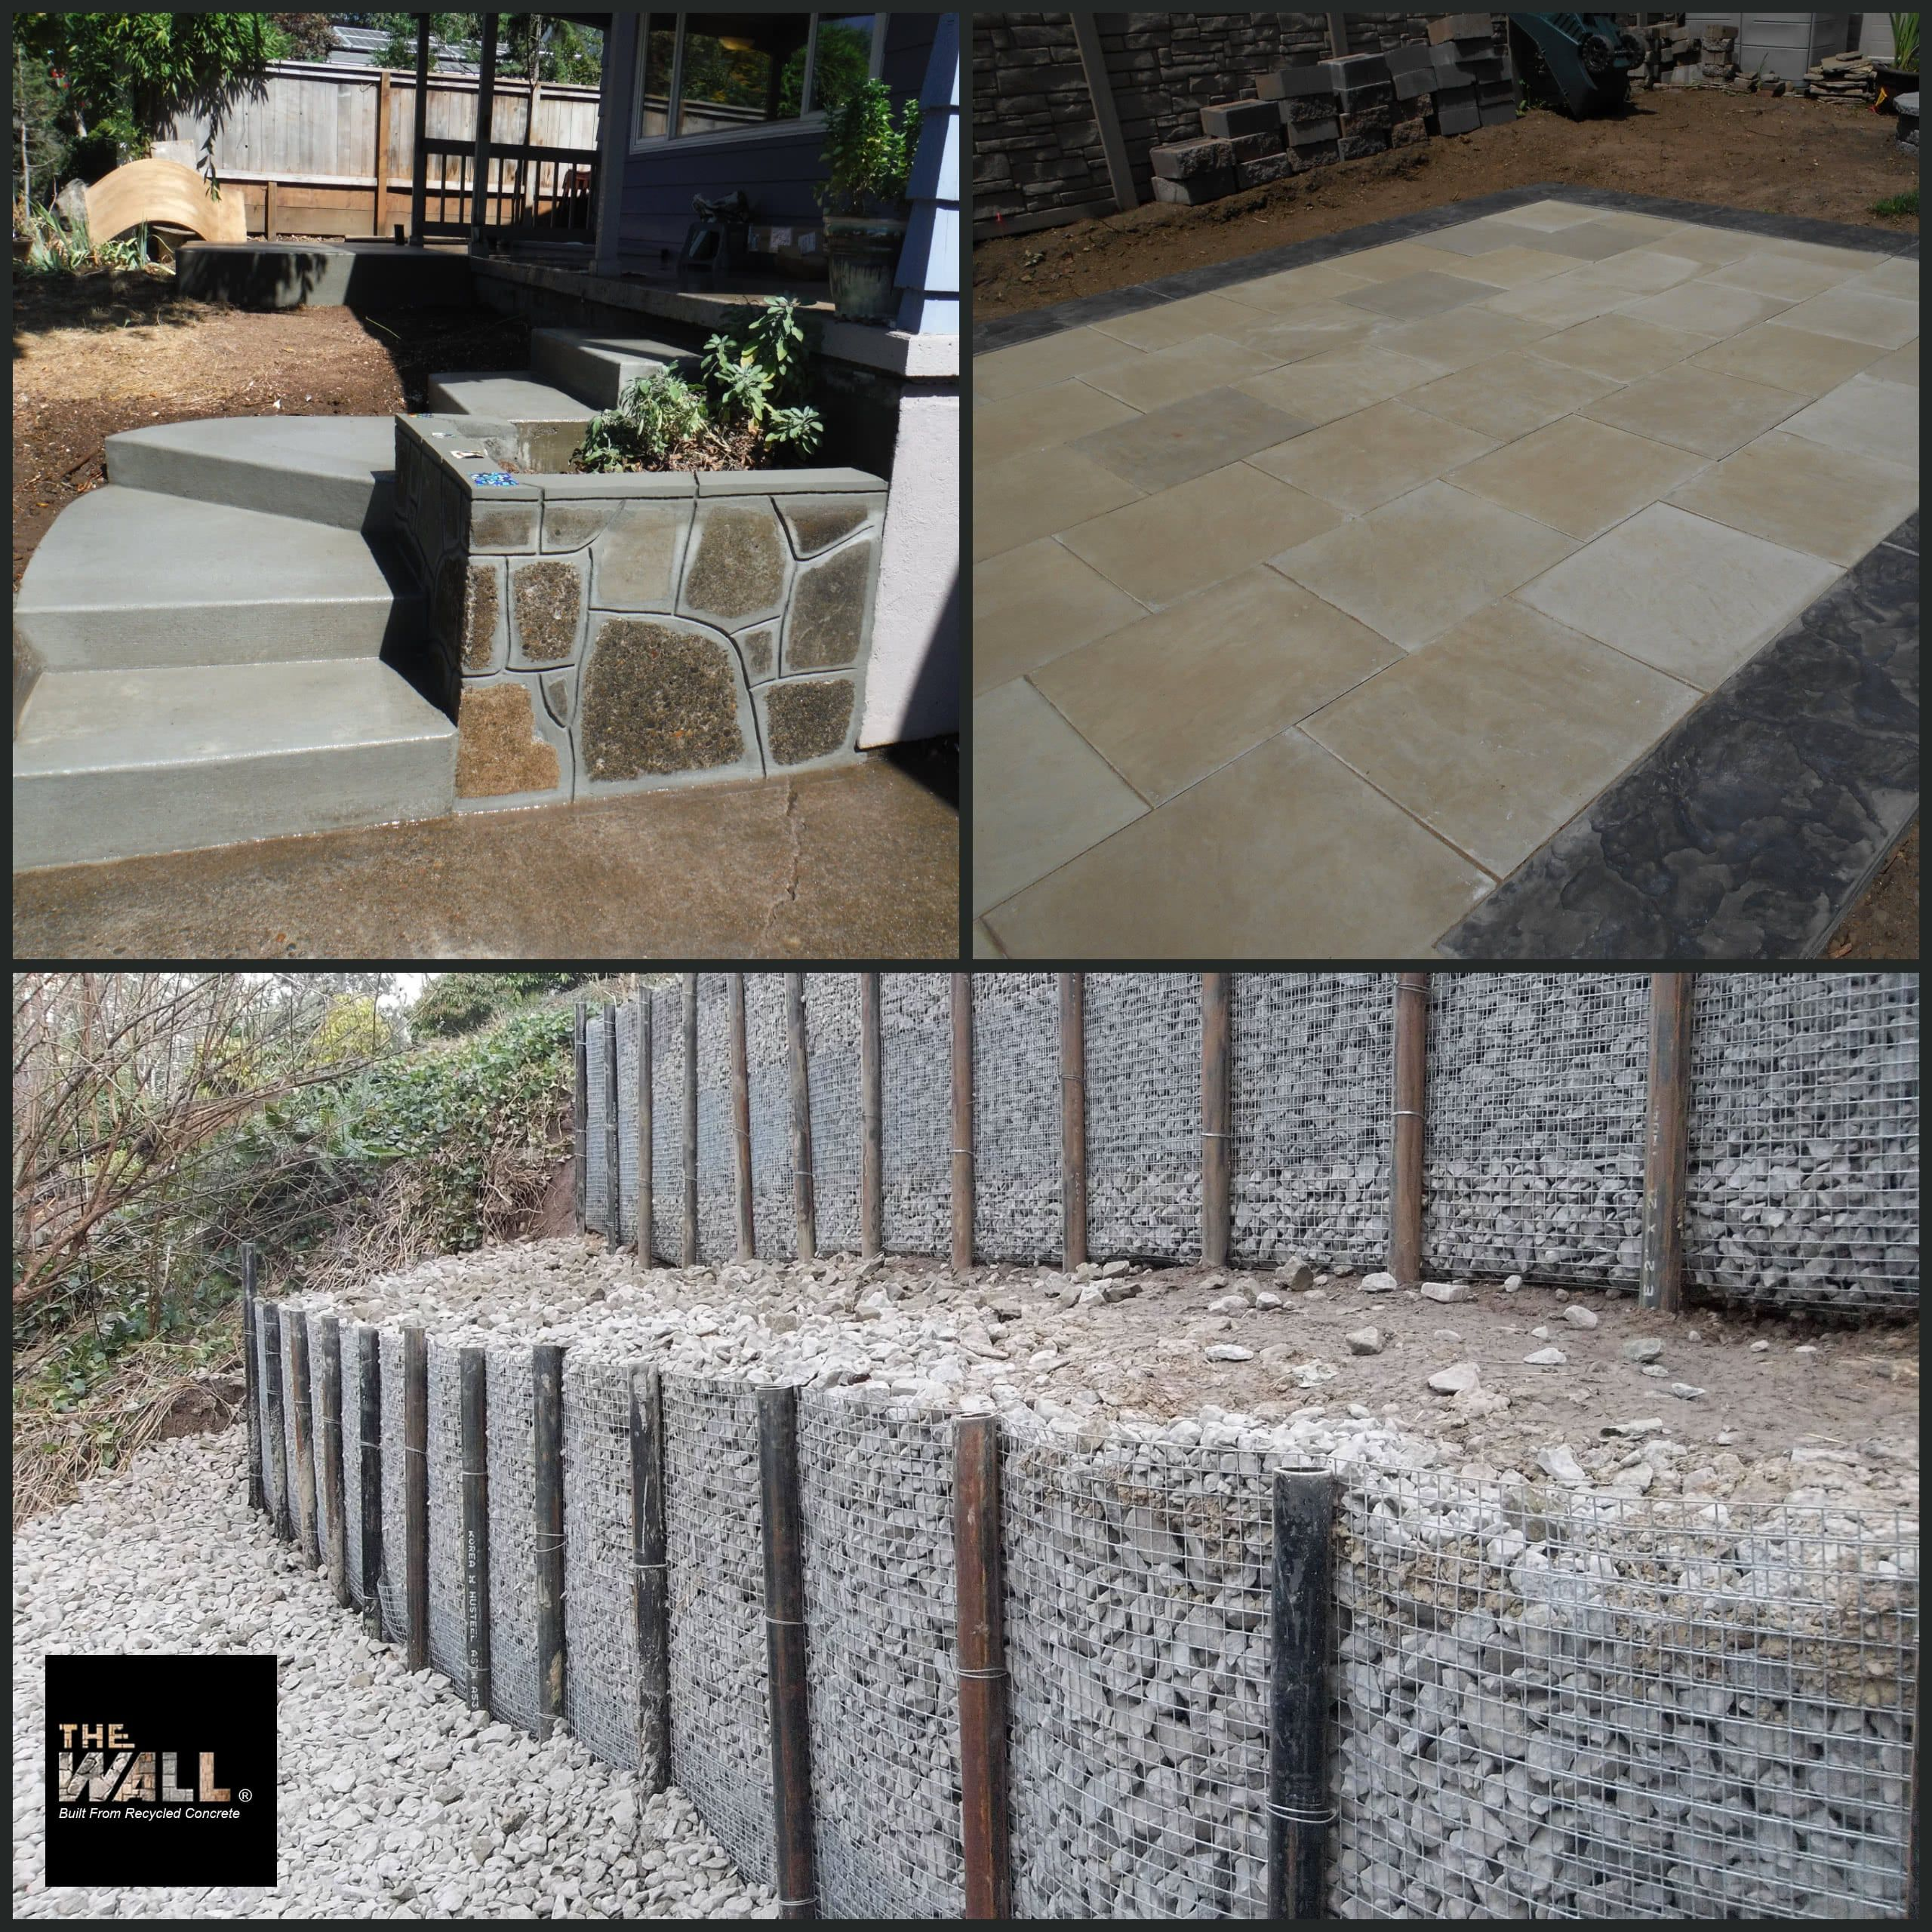 Pin Pile Walls Concrete Stairs Decorative Patios What Is Your Desire Landscape Gardening Lands Concrete Retaining Walls Retaining Wall Concrete Stairs